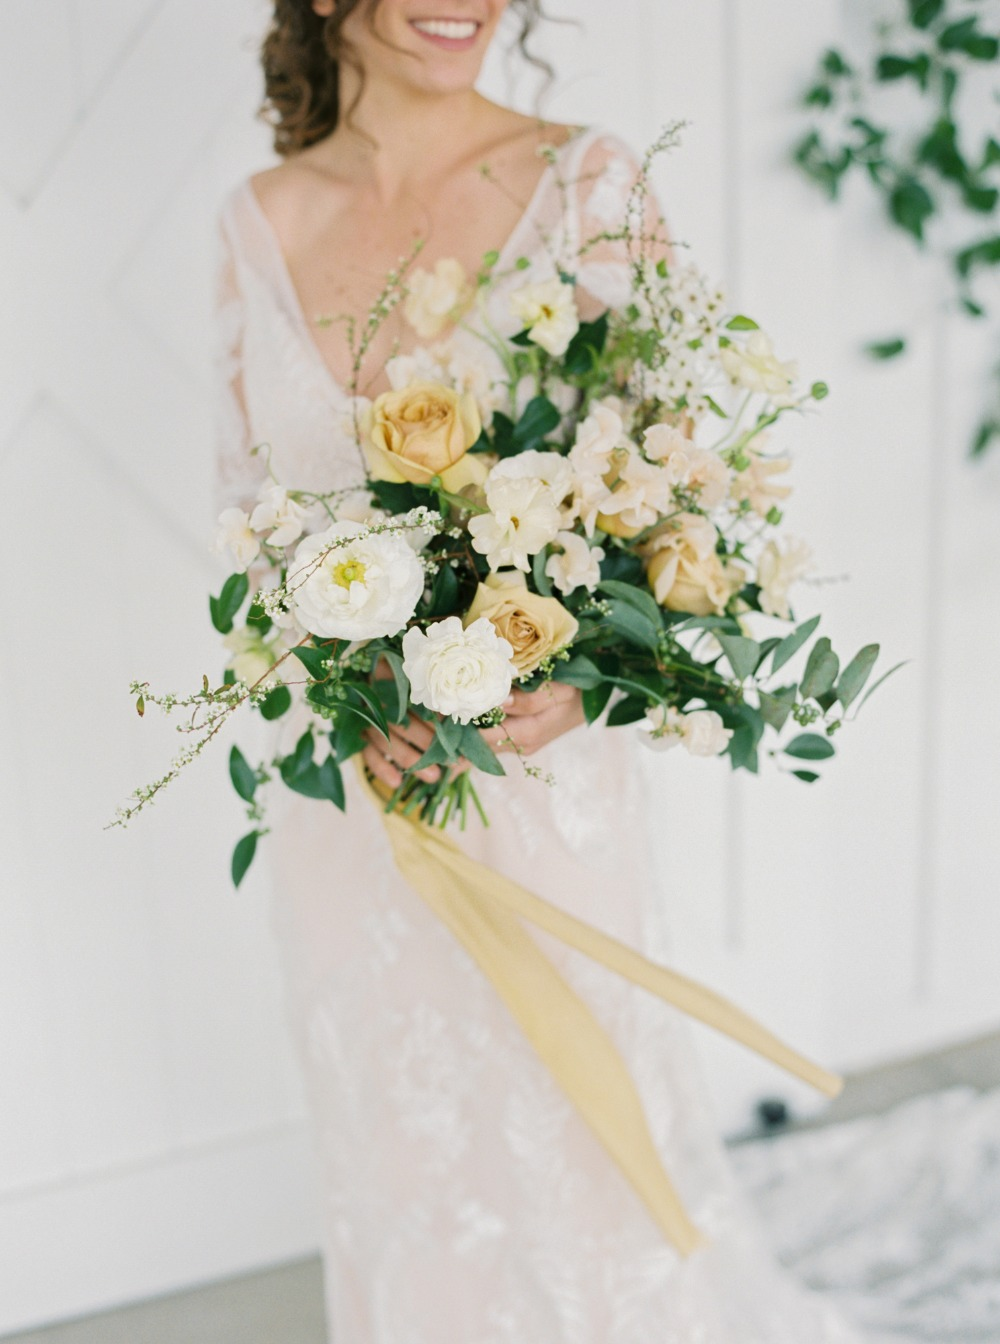 sepia toned wedding bouquet styled by Idlewild Floral